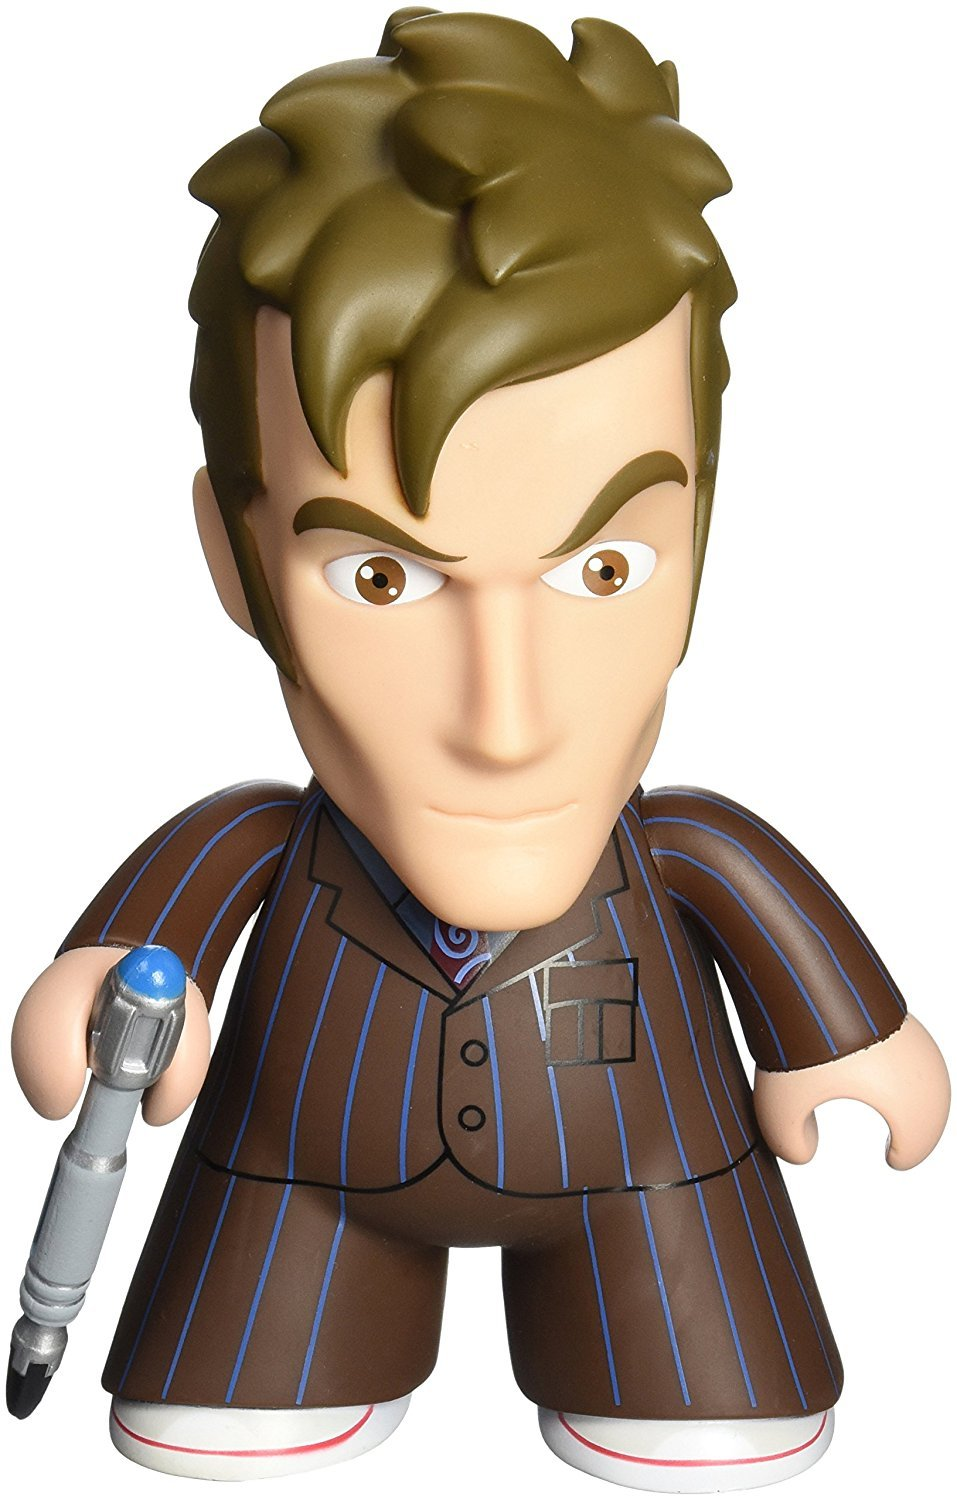 Titan Doctor Who Titans: 10th Doctor 6.5 Vinyl Figure (Suited Version)